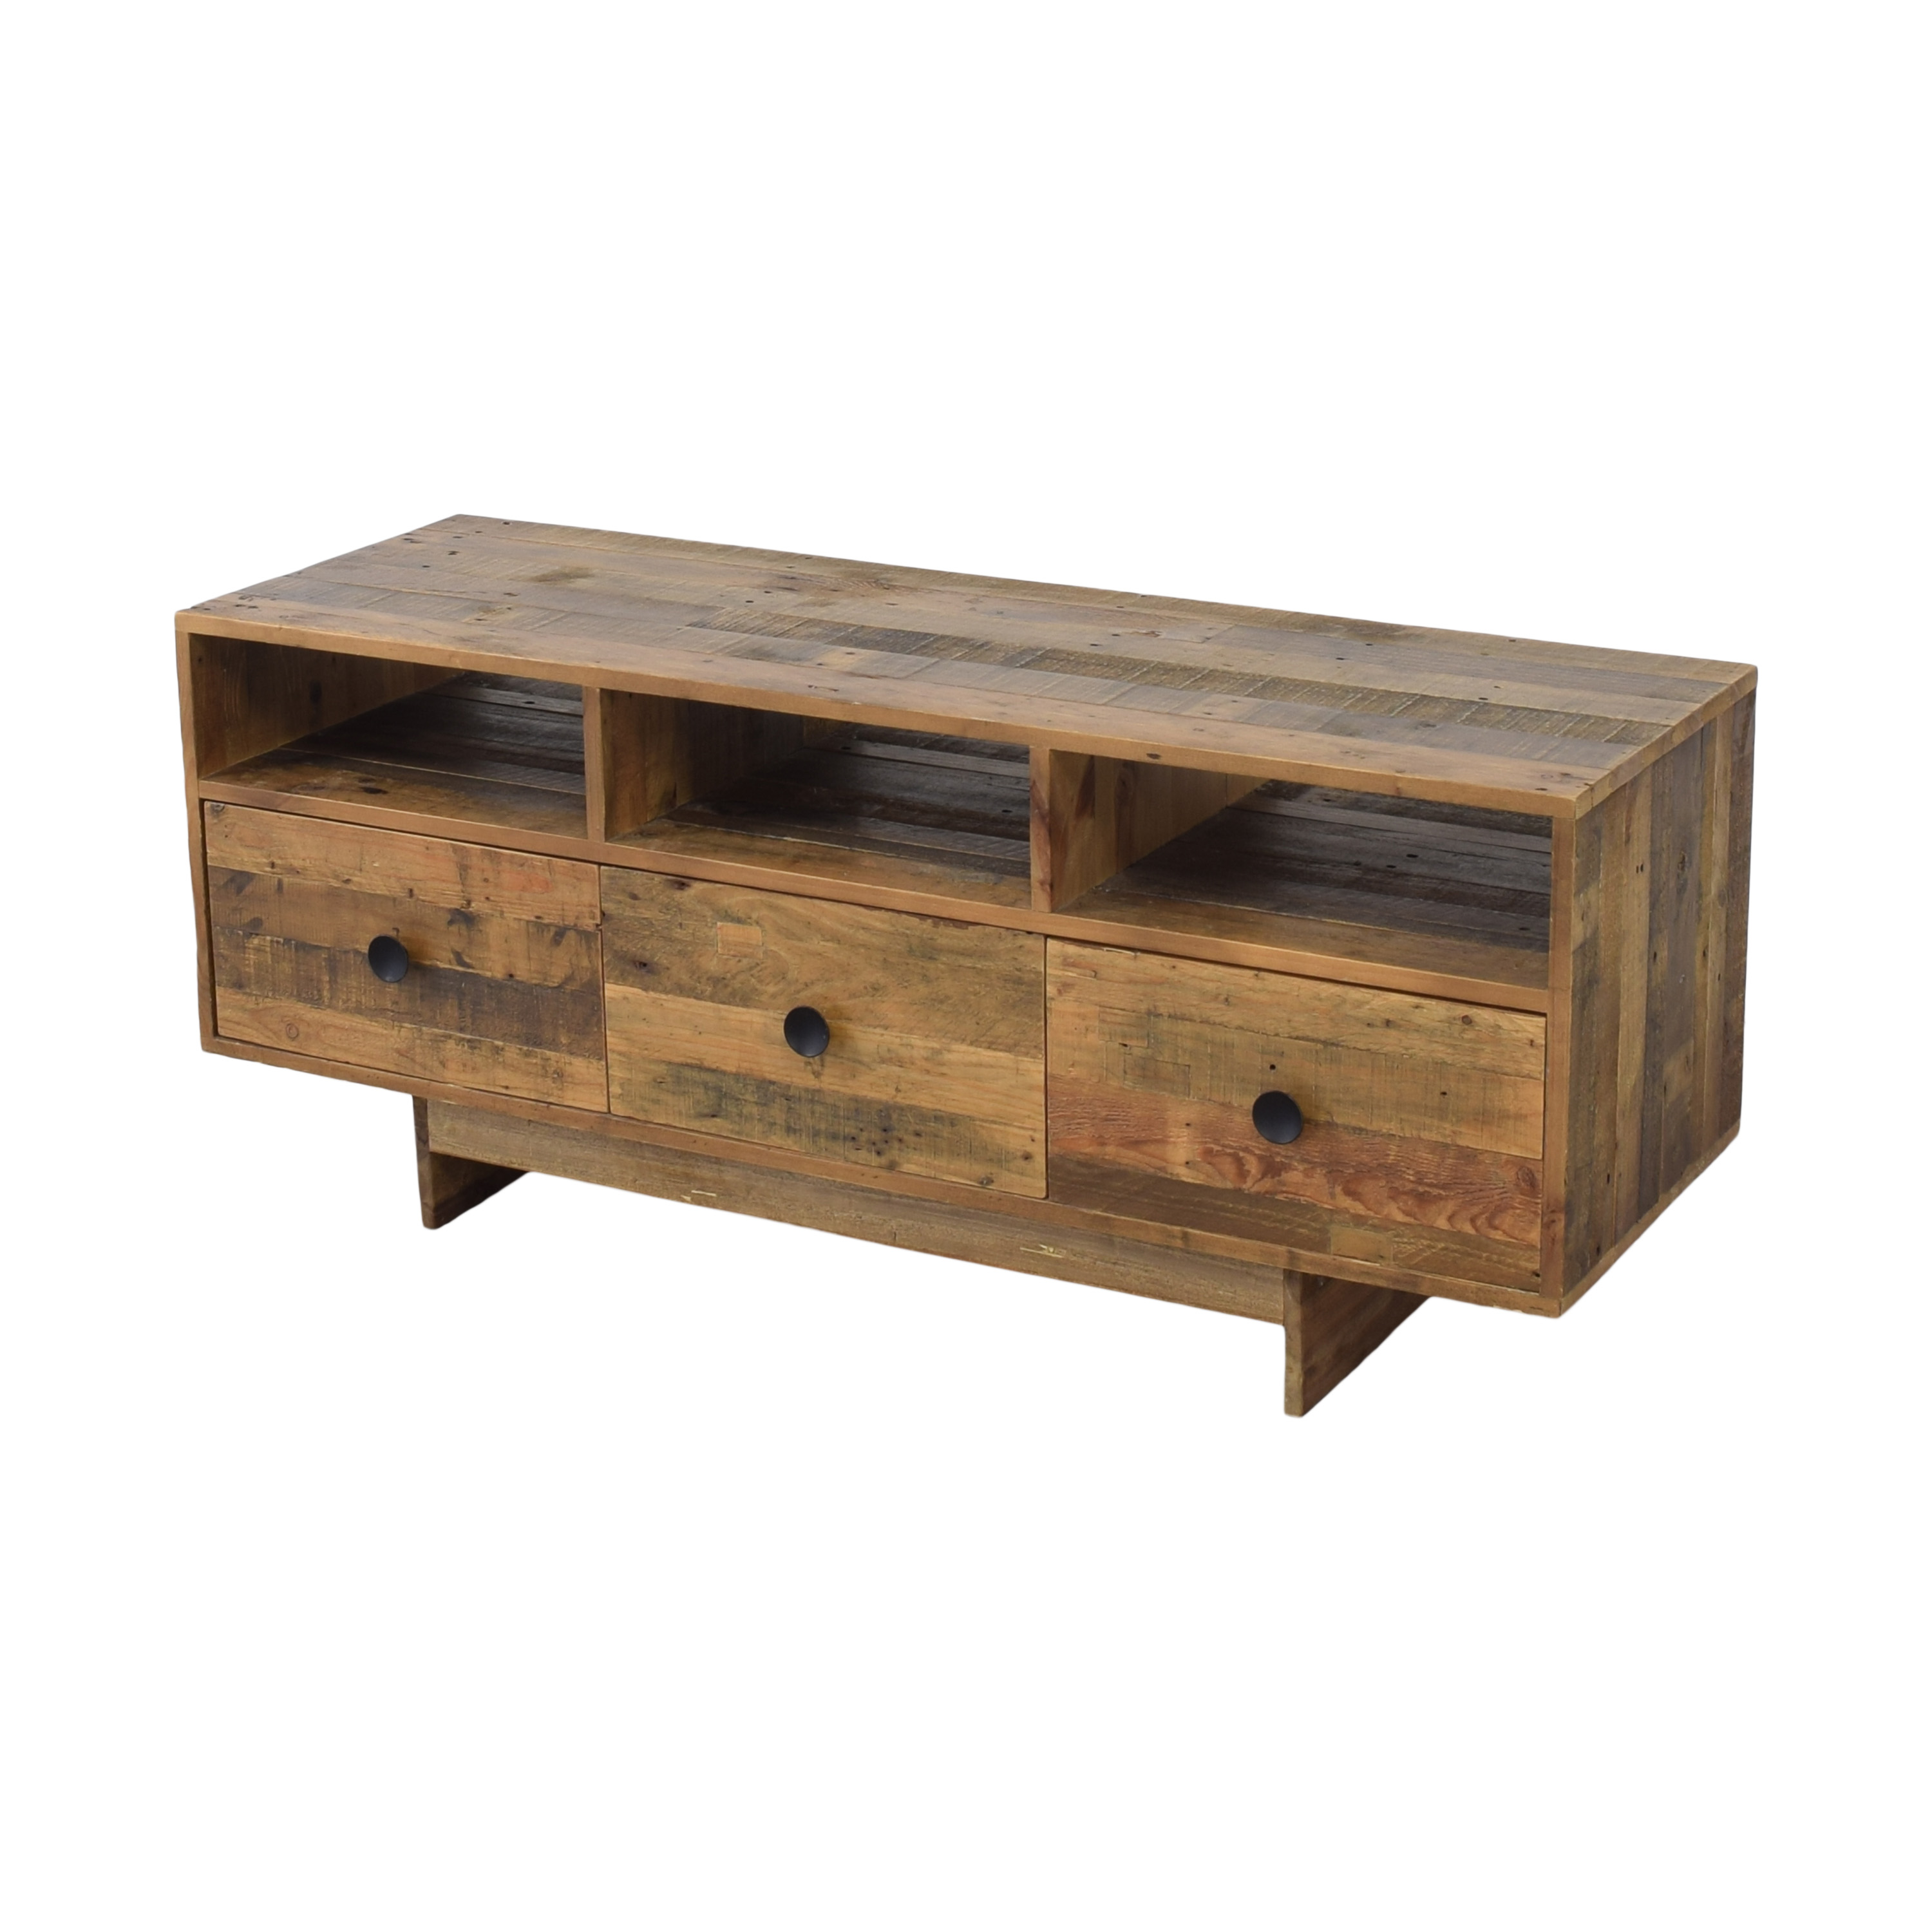 West Elm West Elm Emmerson Media Console on sale